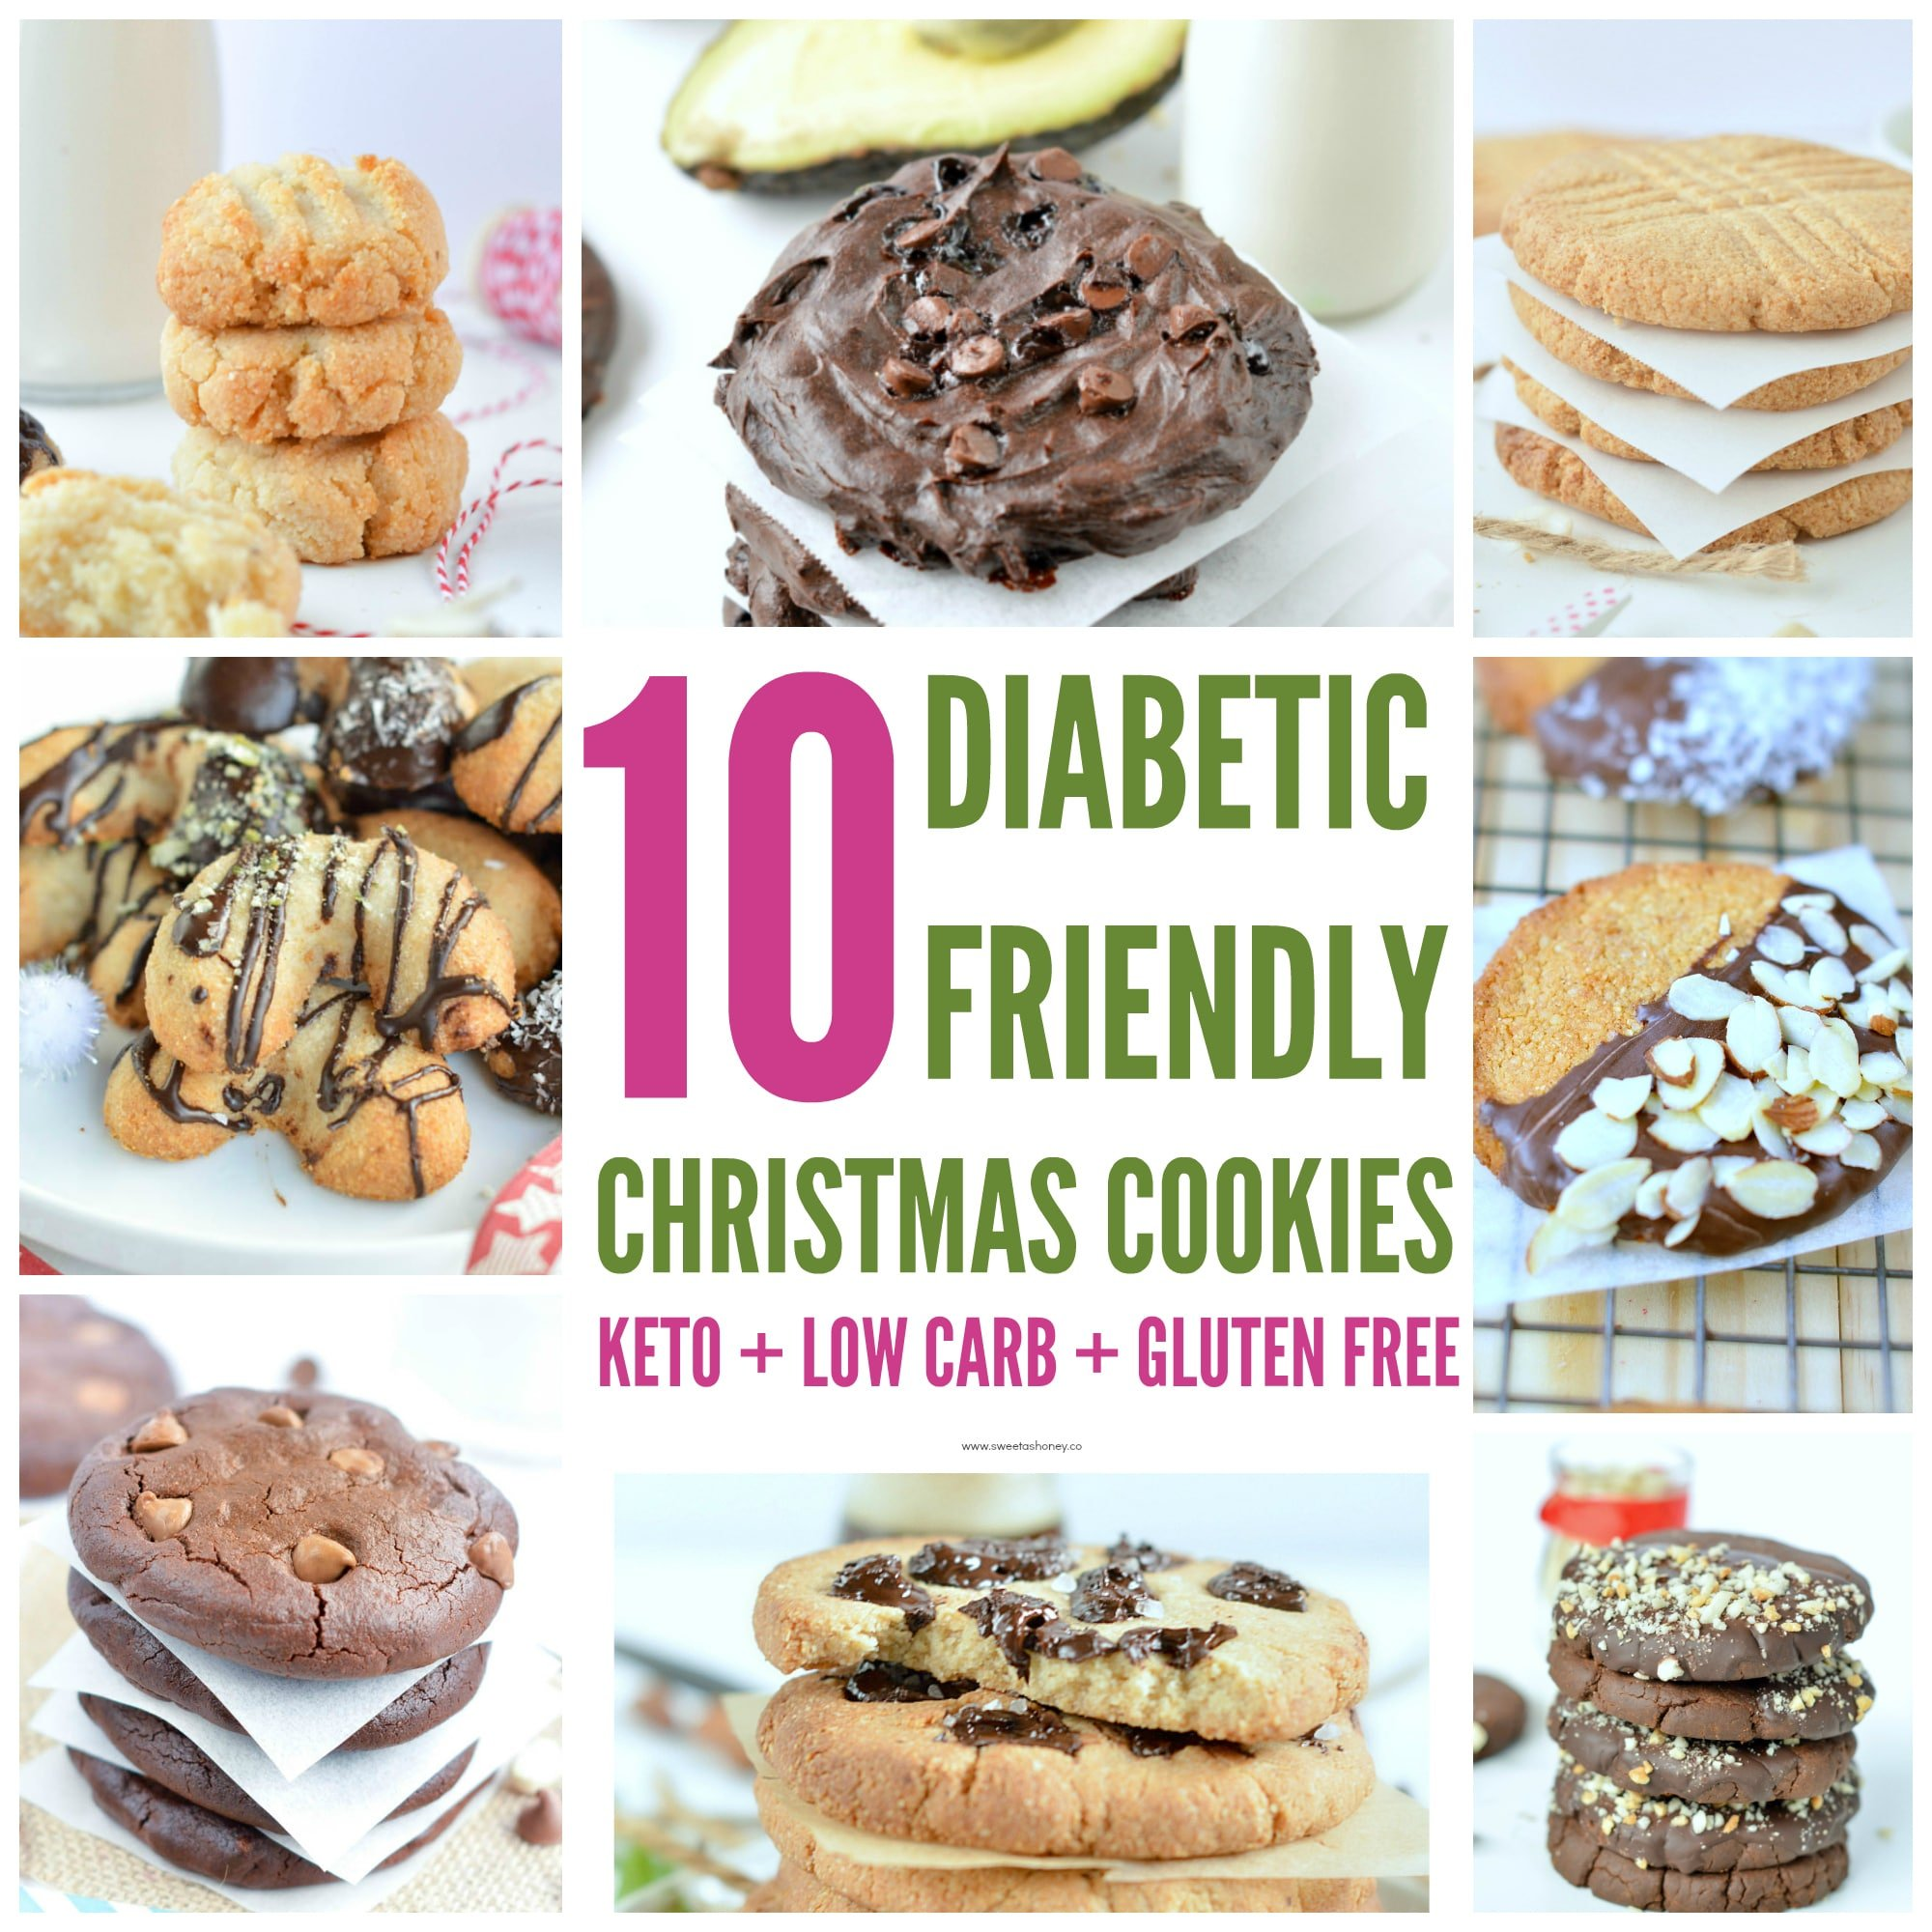 Diabetic Christmas cookies keto